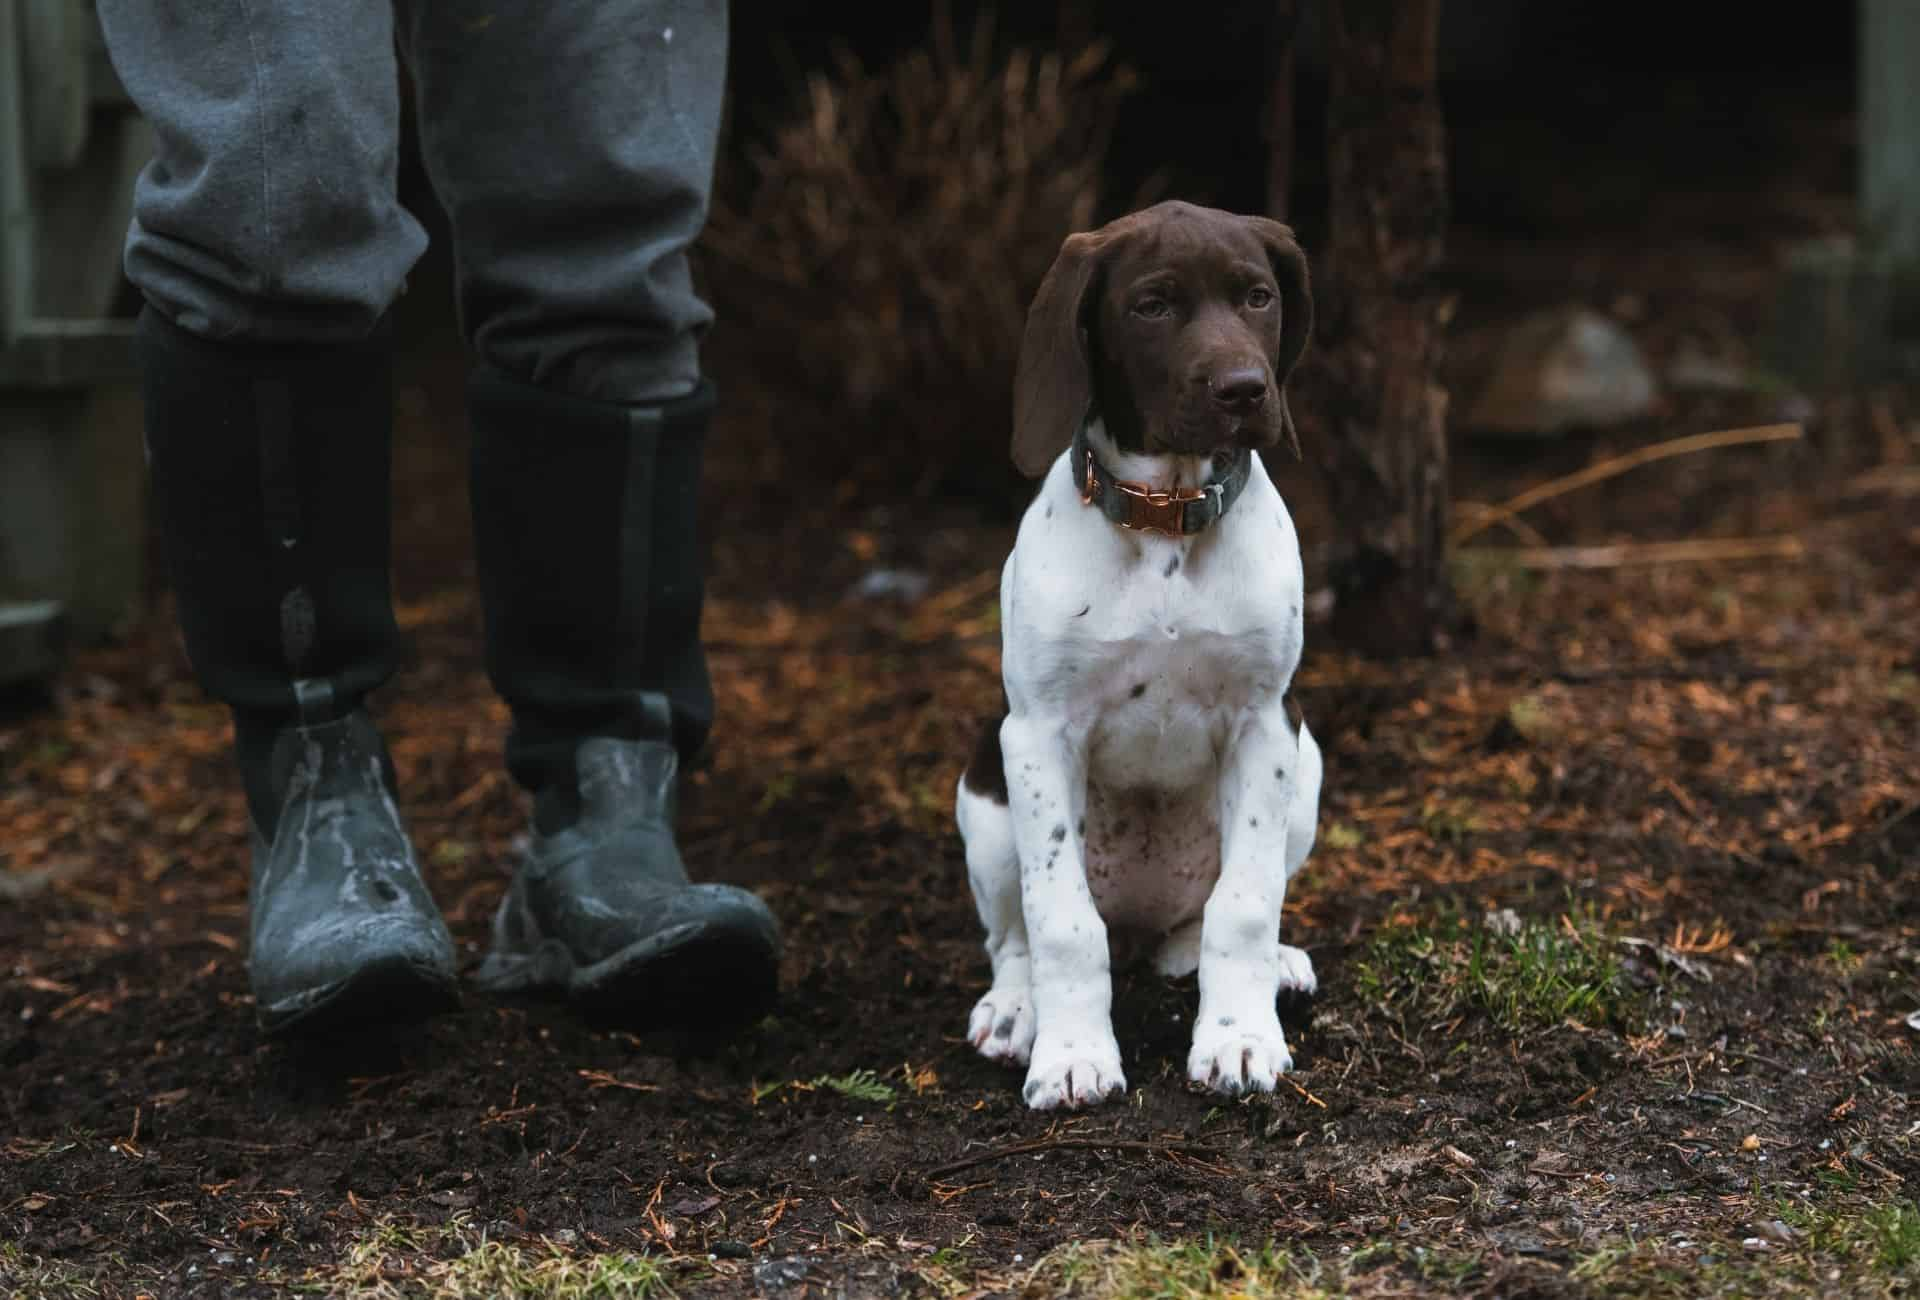 German Shorthaired Pointer puppy with big-boned legs outdoors next to a human handler in boots.